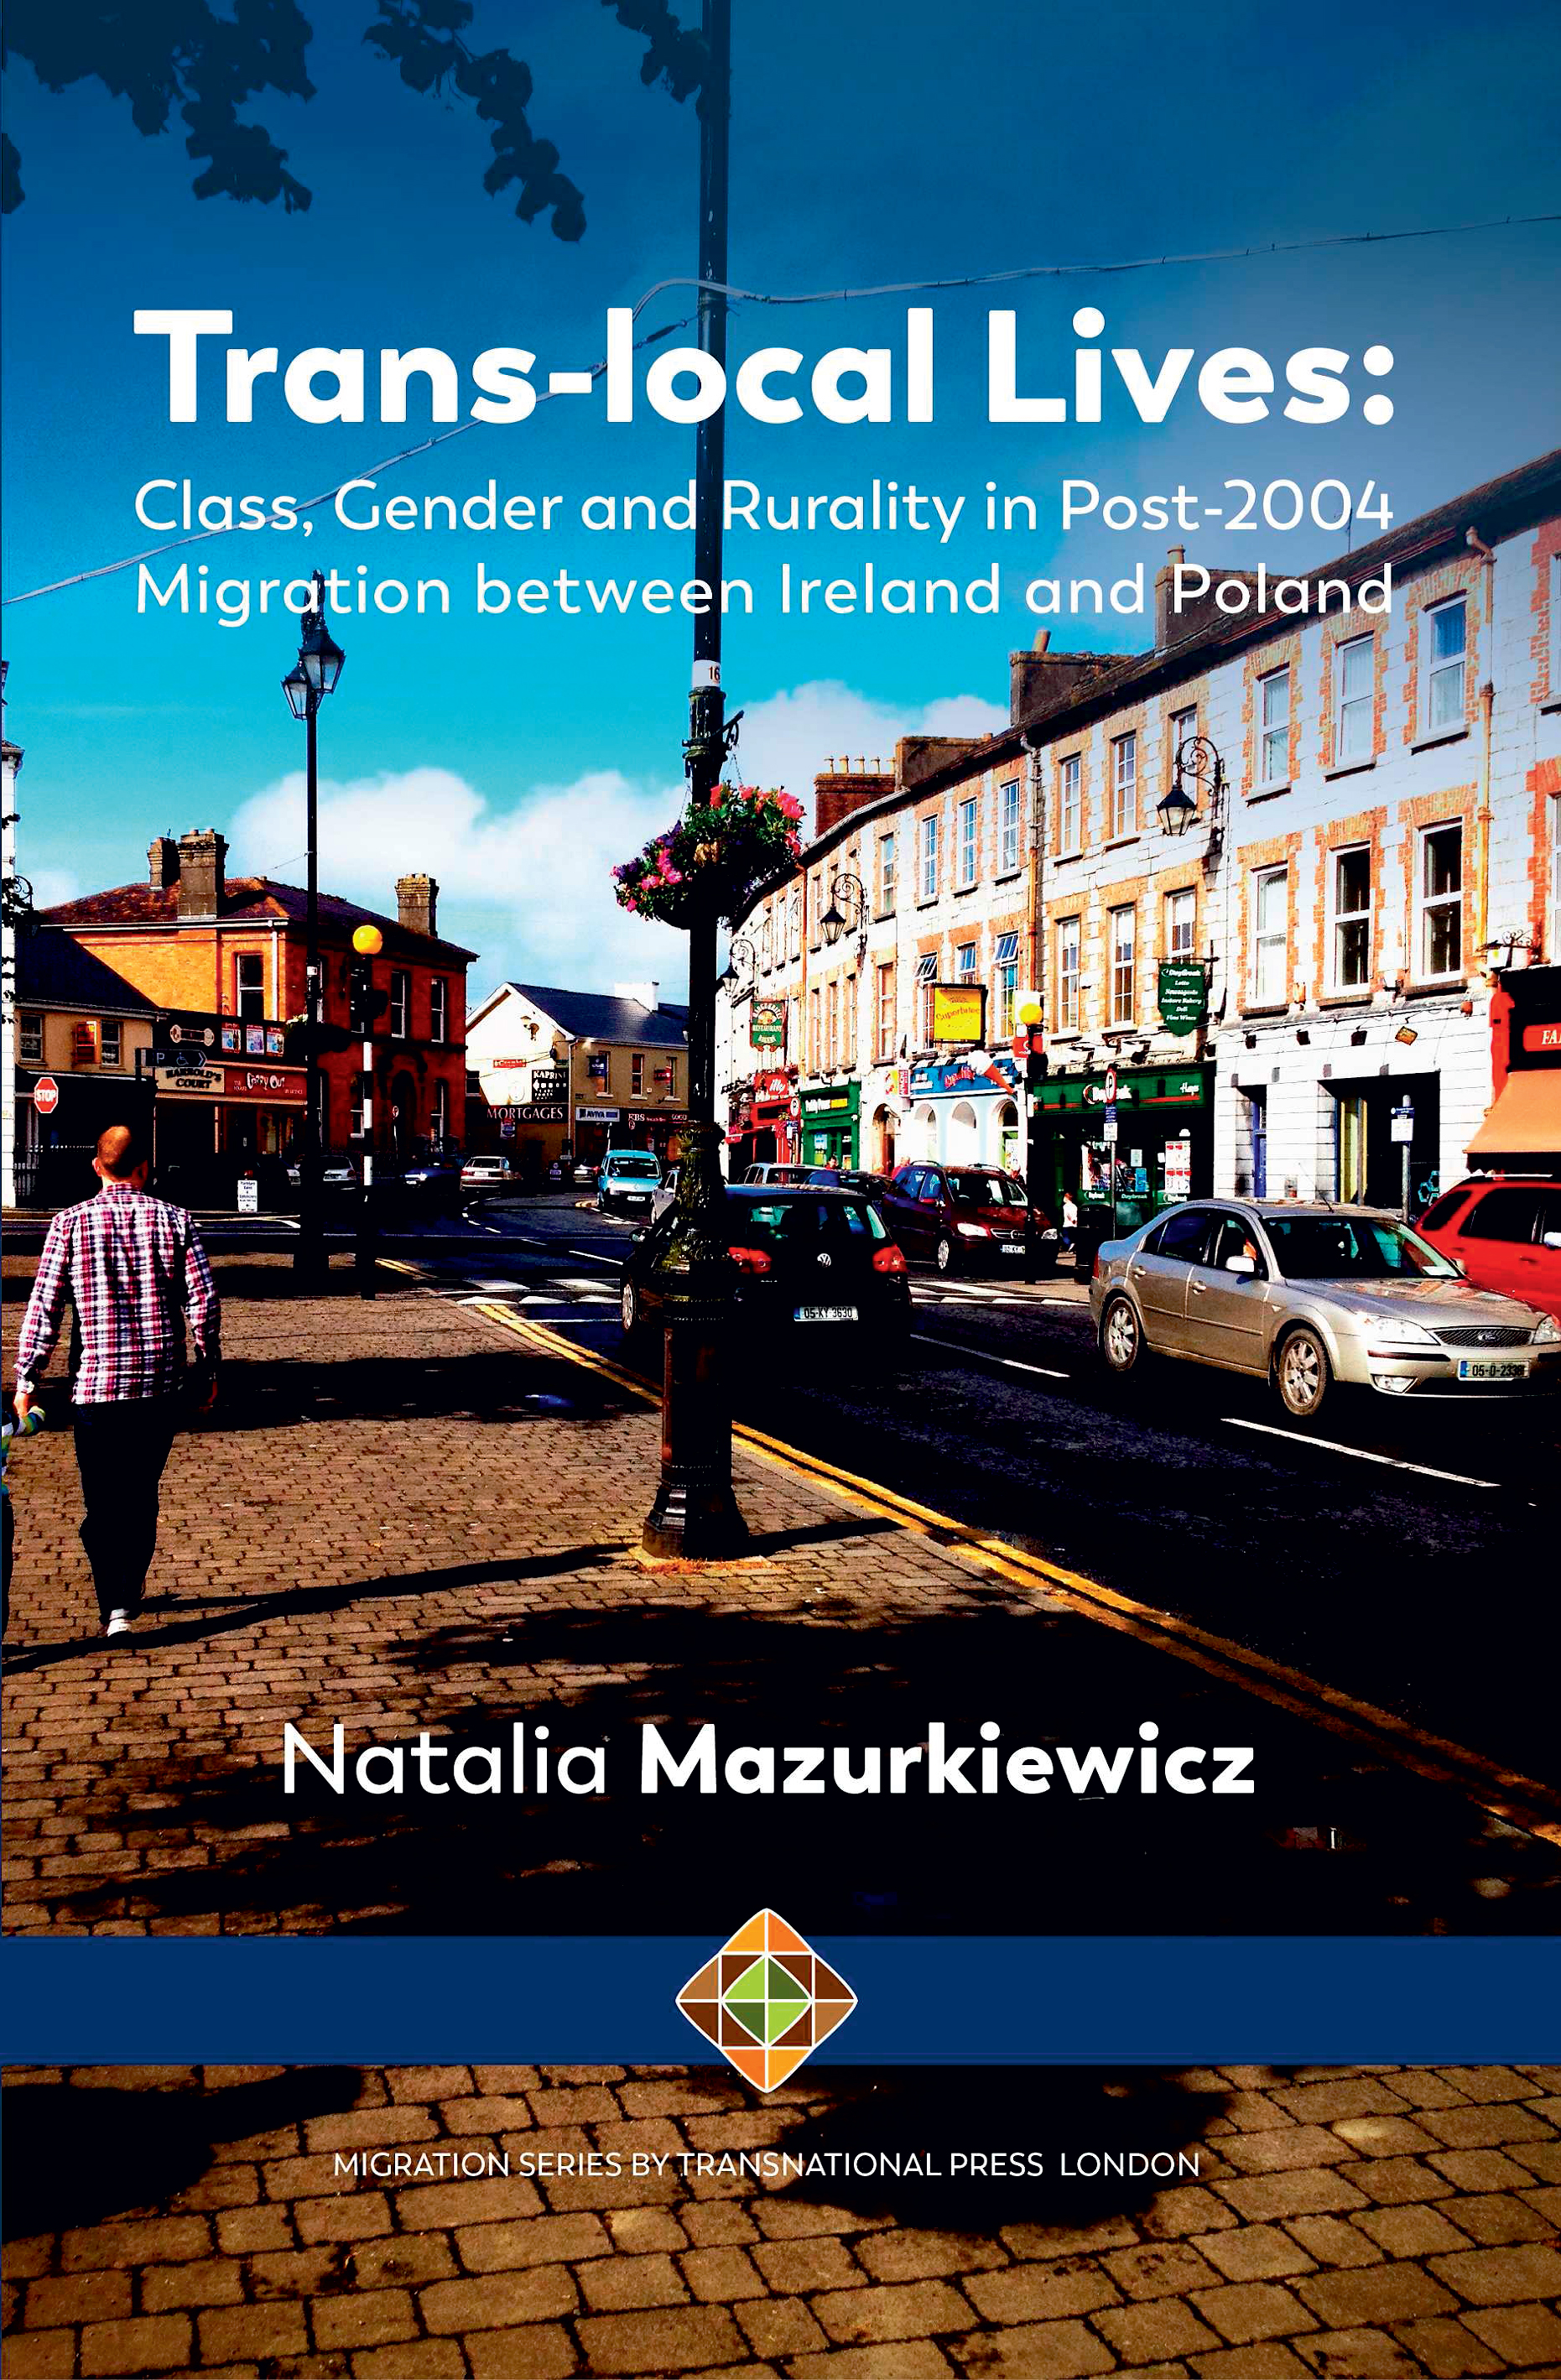 Trans-local Lives: Class, Gender and Rurality in post-2004 Migration between Ireland and Poland Natalia Mazurkiewicz